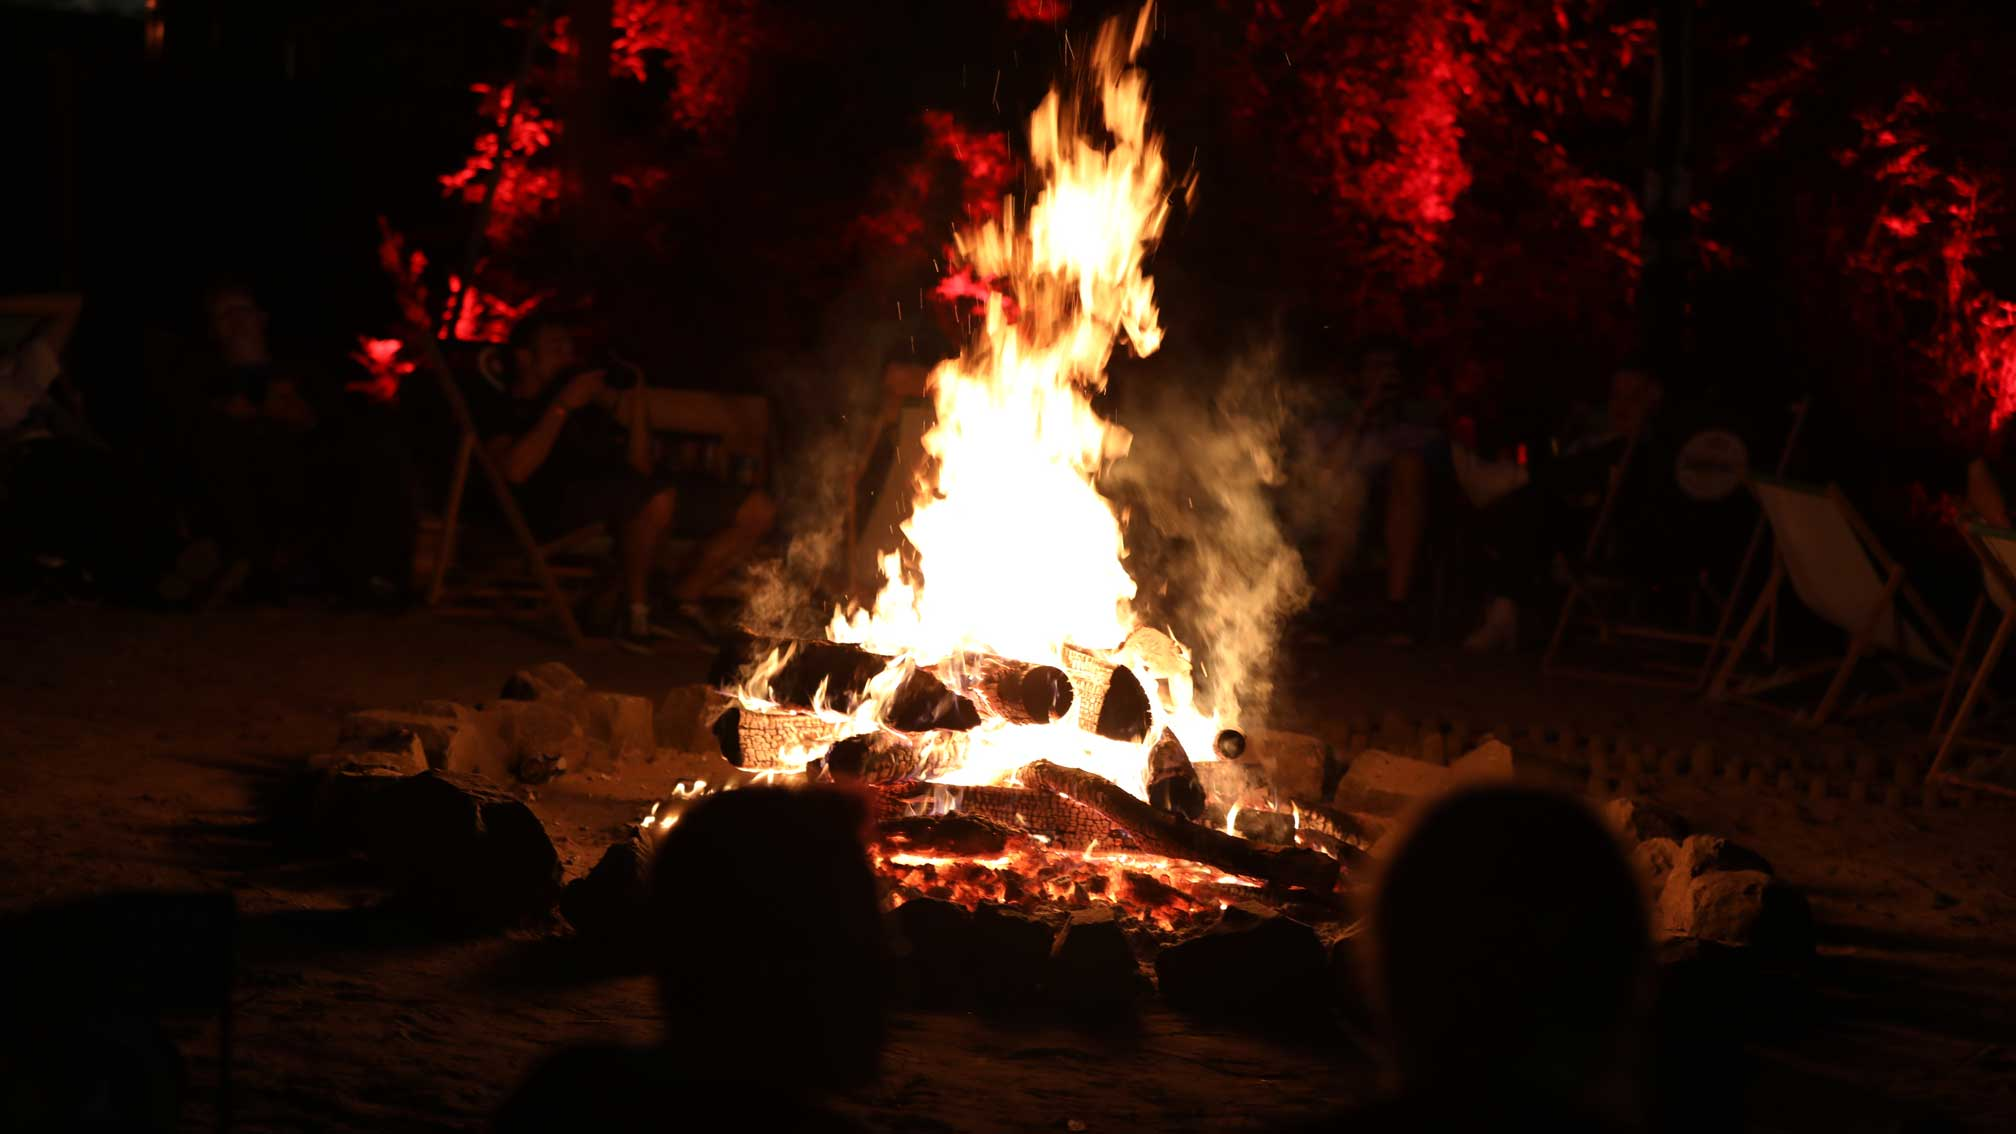 gamescomCamp Lagerfeuer